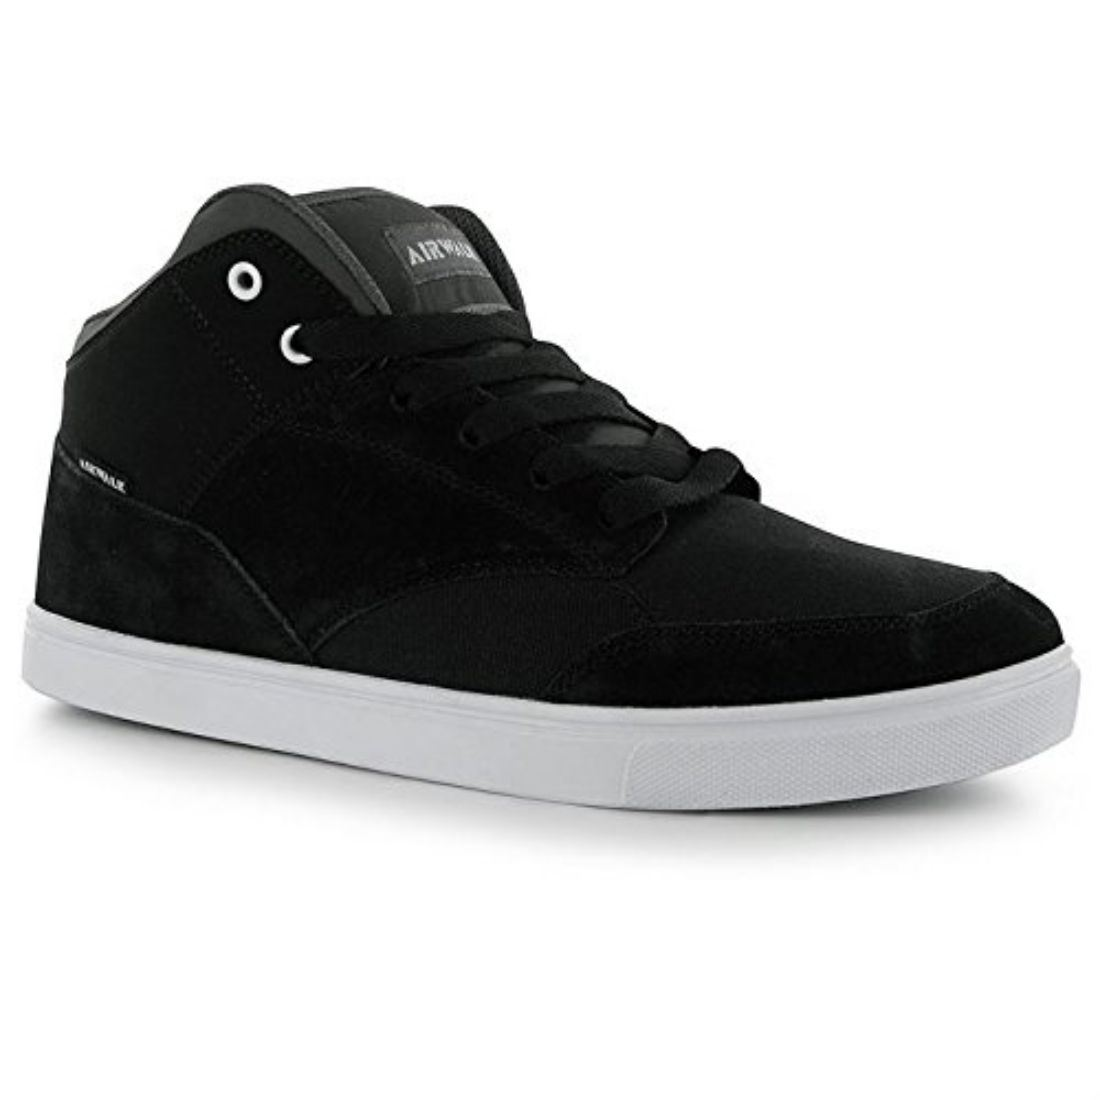 Airwalk Hombre Brock Skate Shoes Negro/Rojo 41 3pfF6e8P